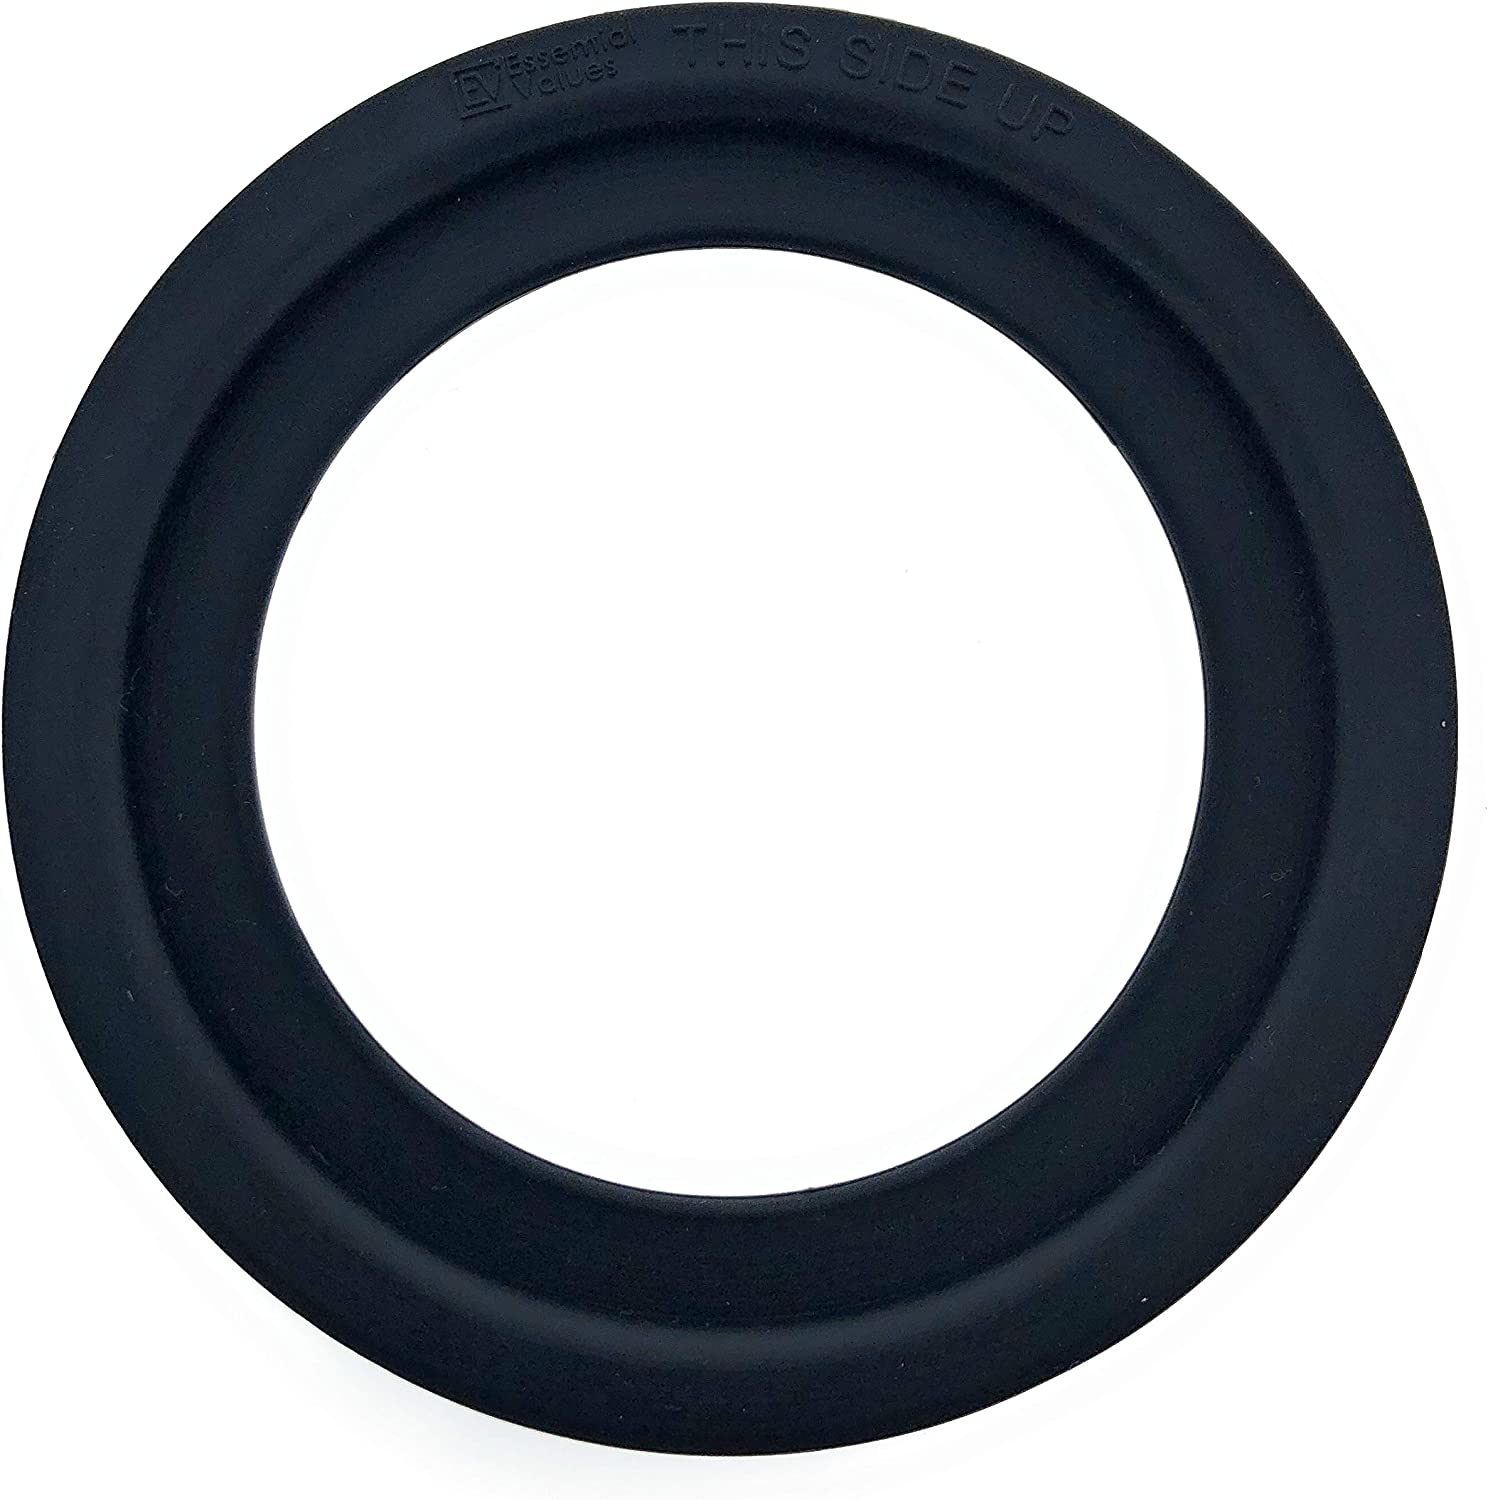 Essential Values Choice Replacement Flush Ball Seal for Dometic Toil New product RV